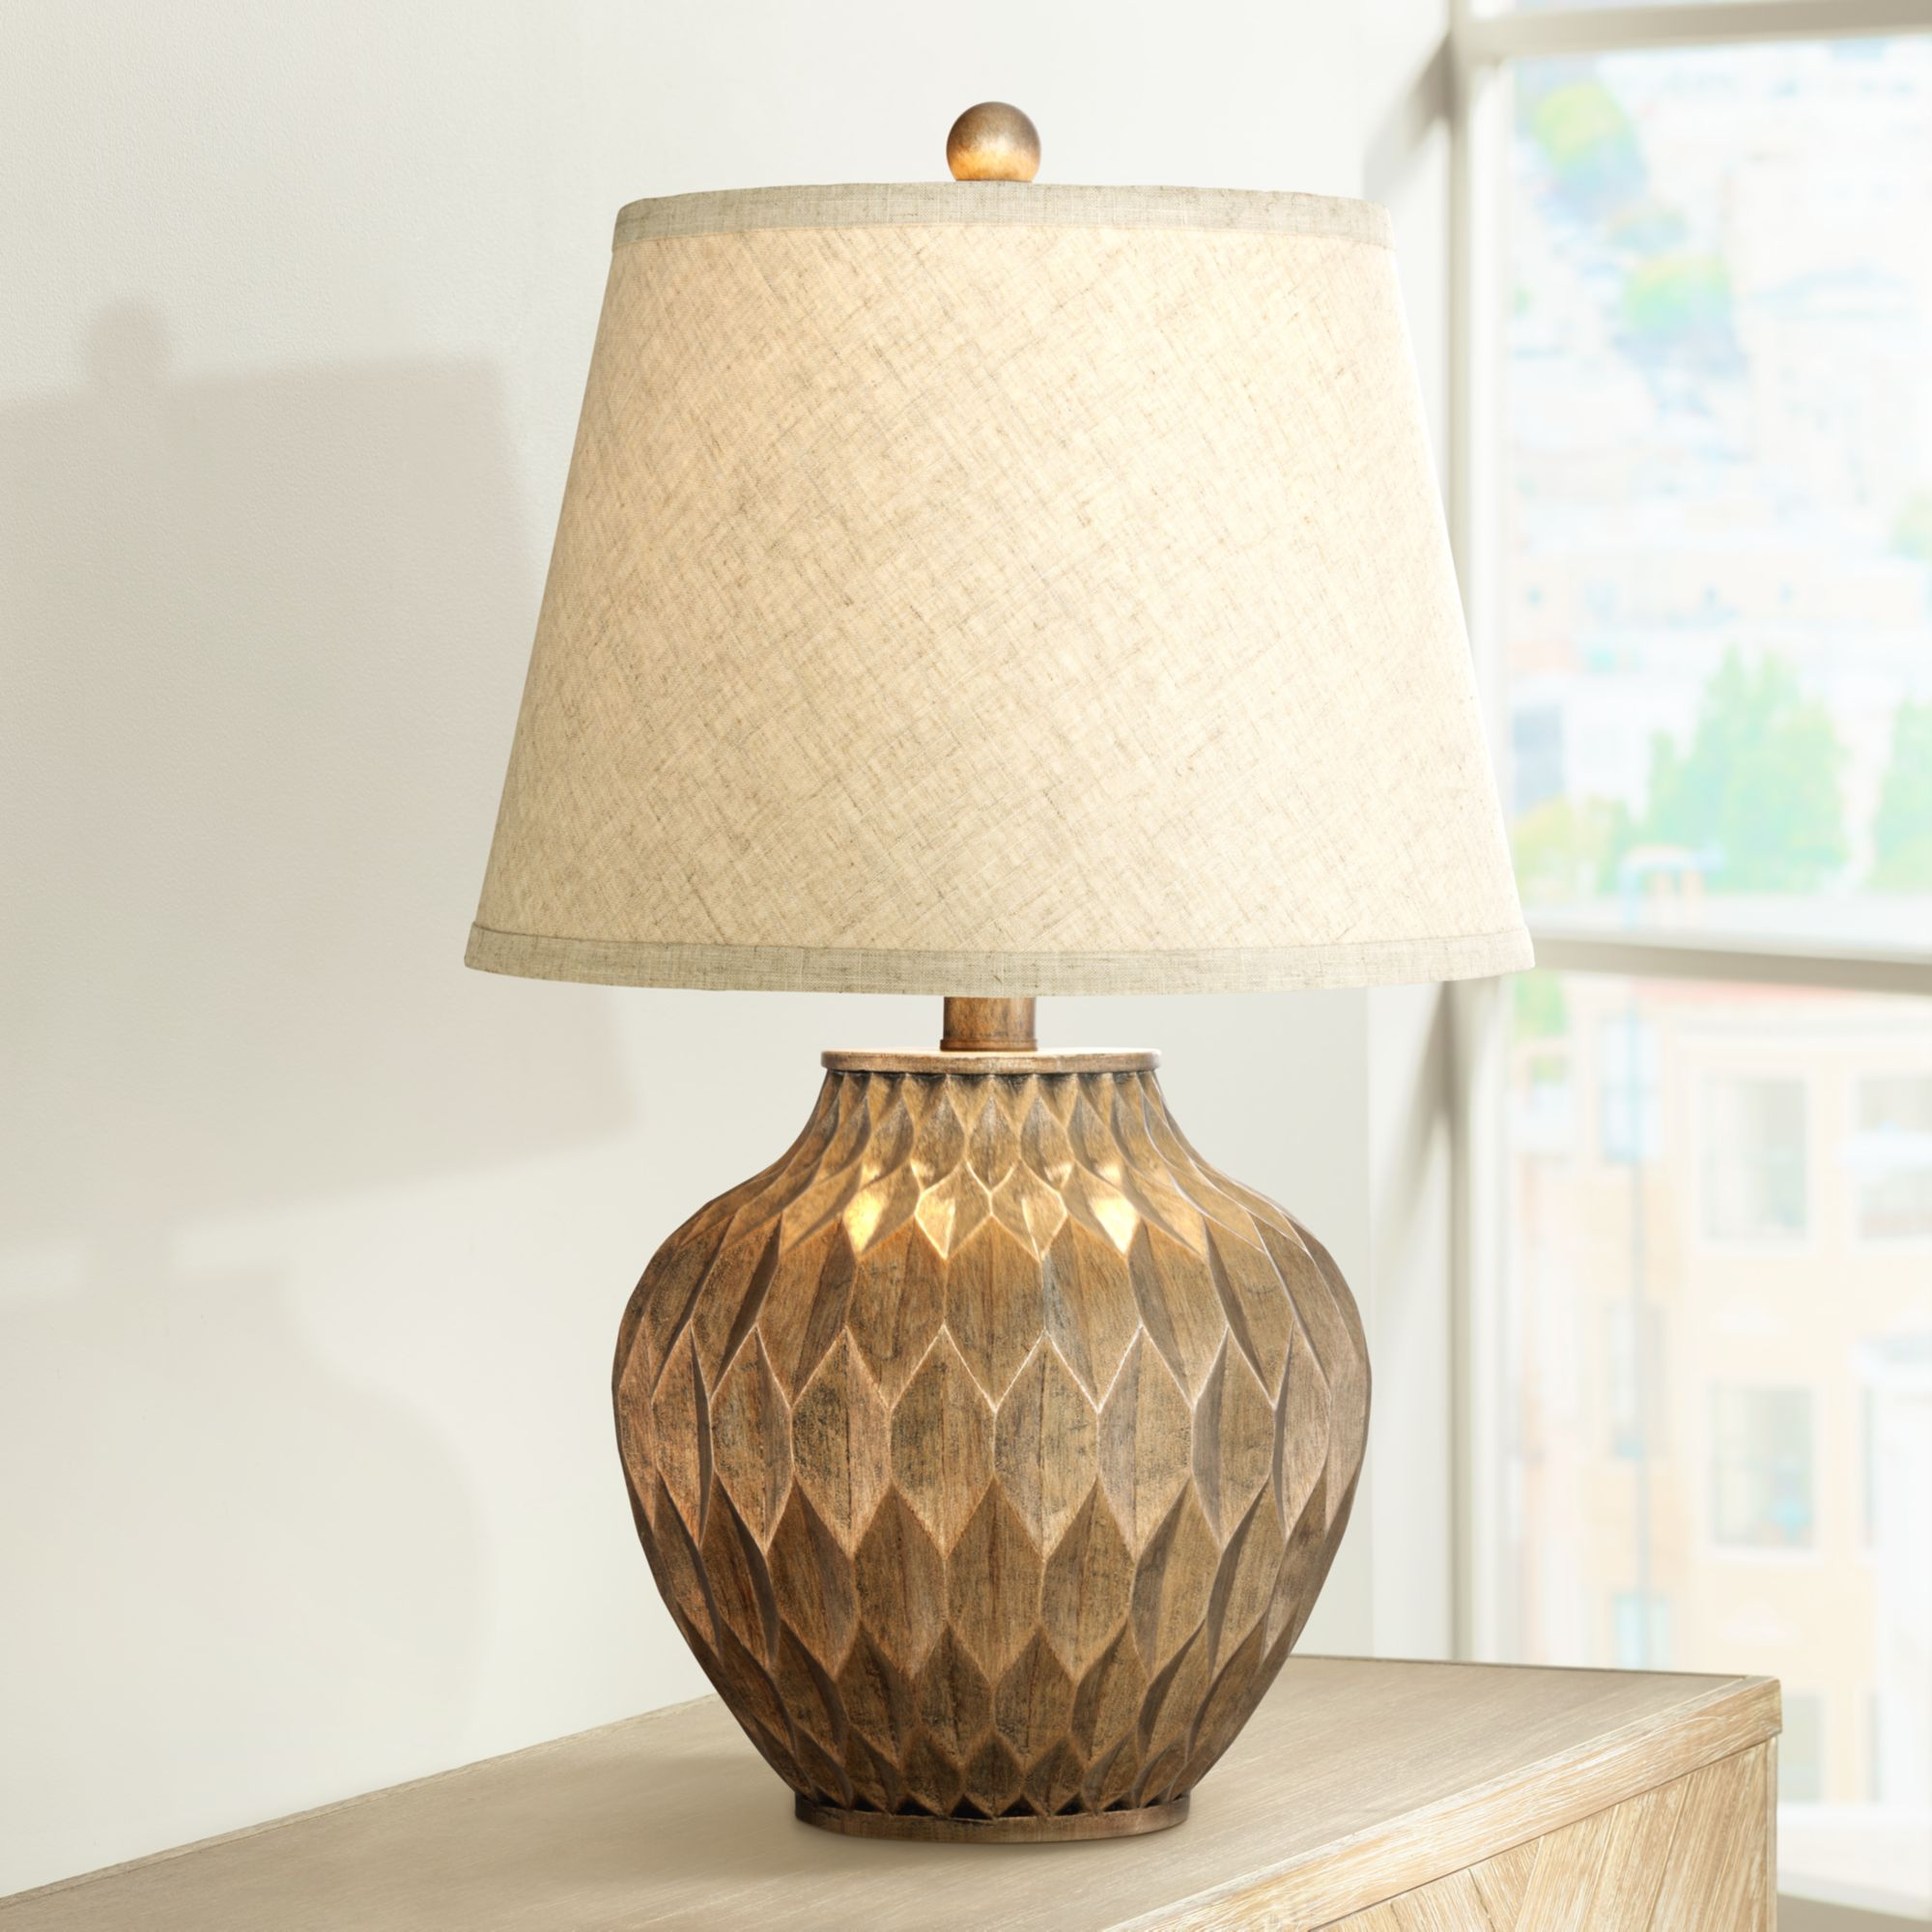 lighting modern accent table lamp warm bronze geometric urn lamps tapered drum shade for living room family bedroom bedside office small vintage dining decor ideas media console